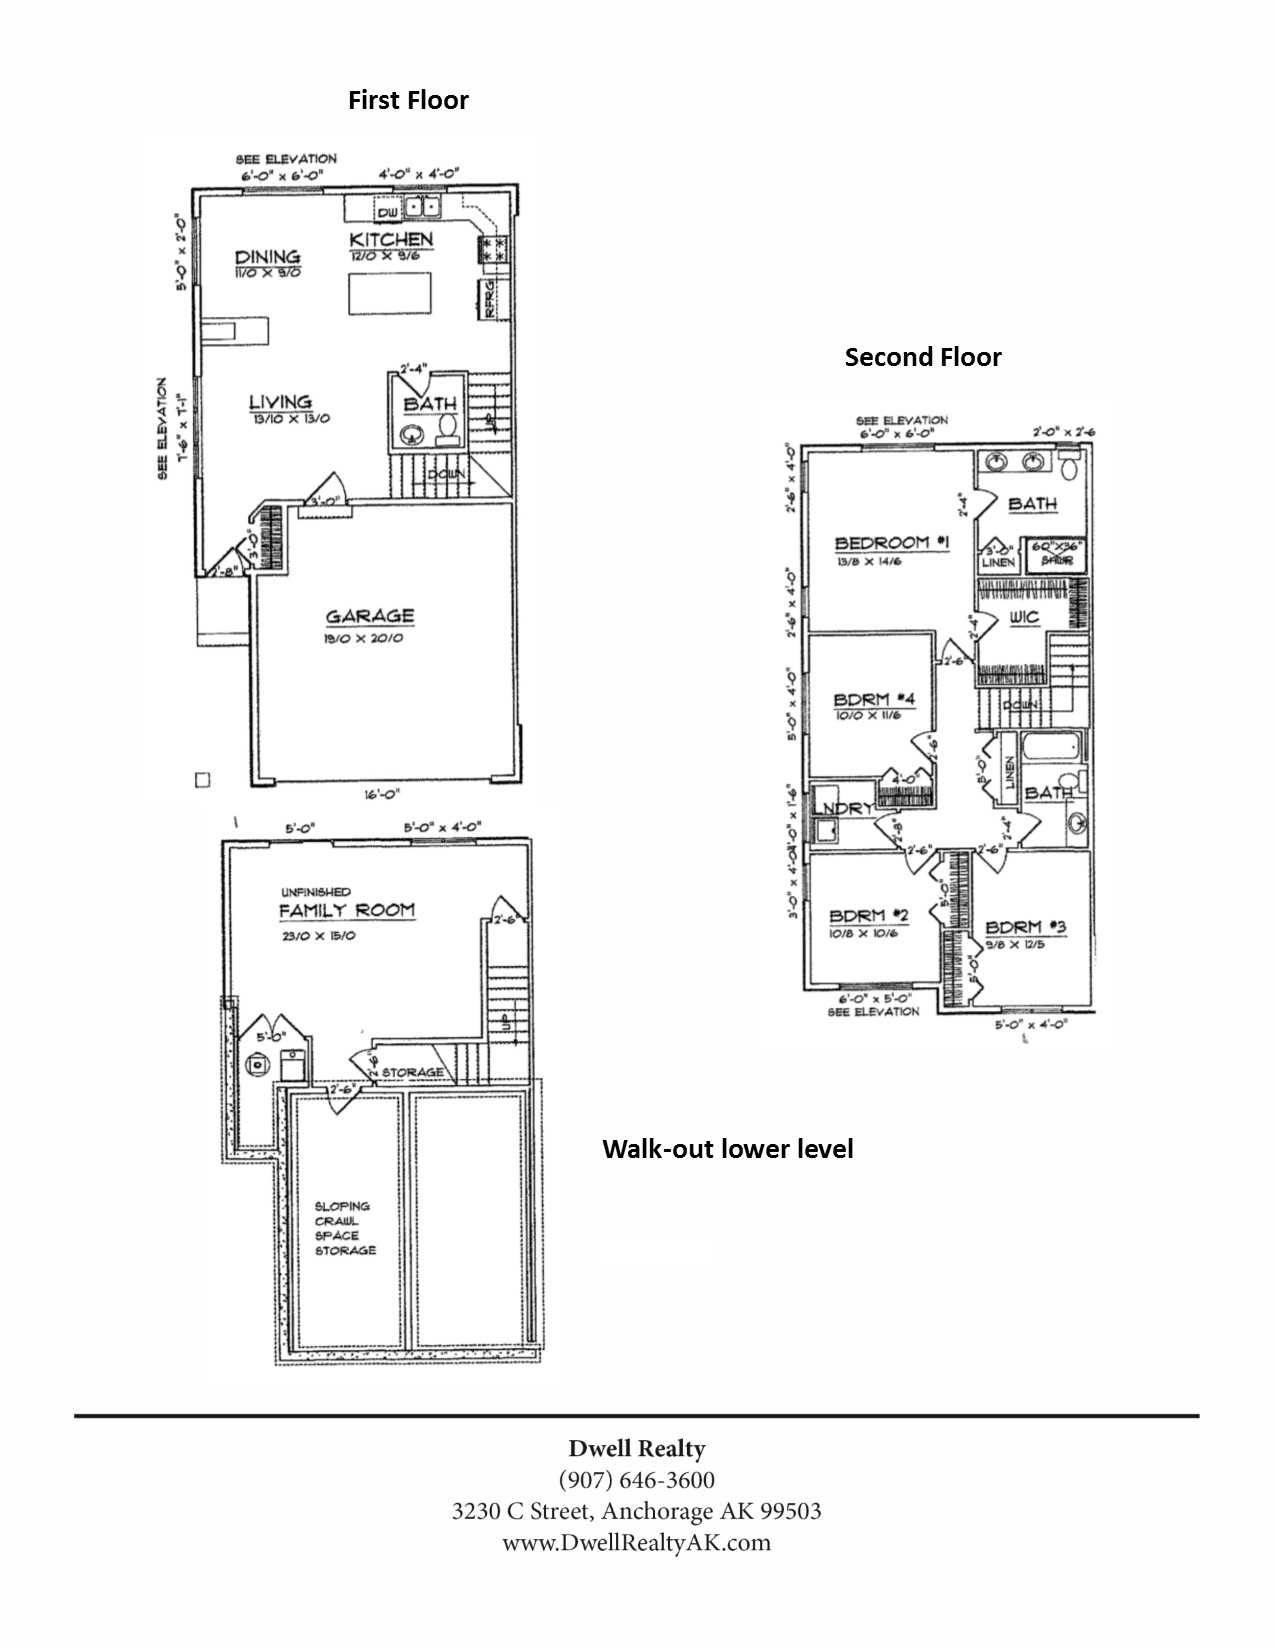 Mercedes Homes Floor Plans 2005